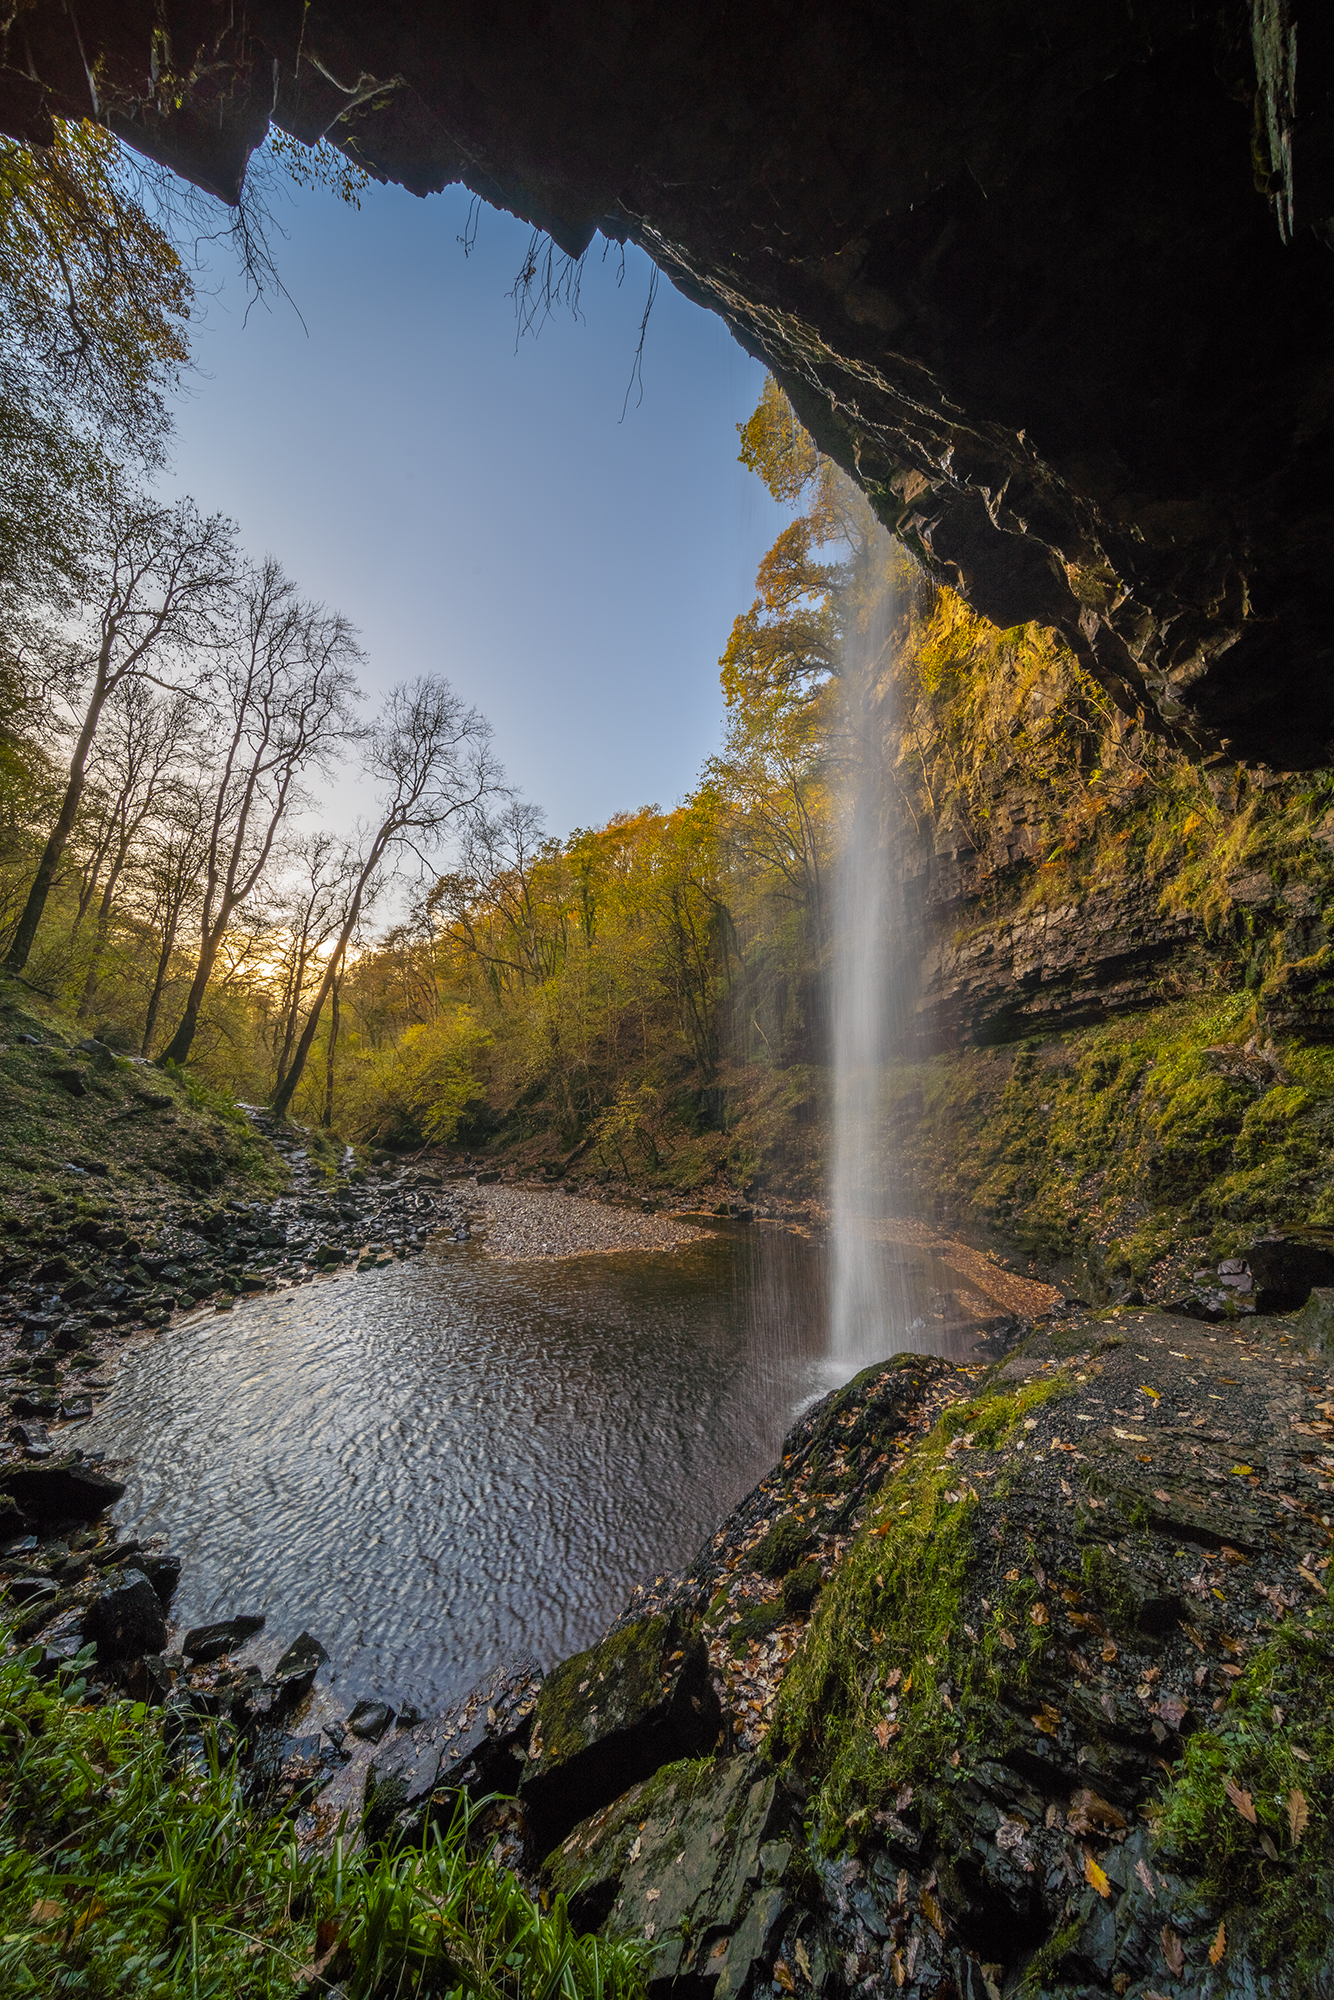 behind waterfall - f22.jpg